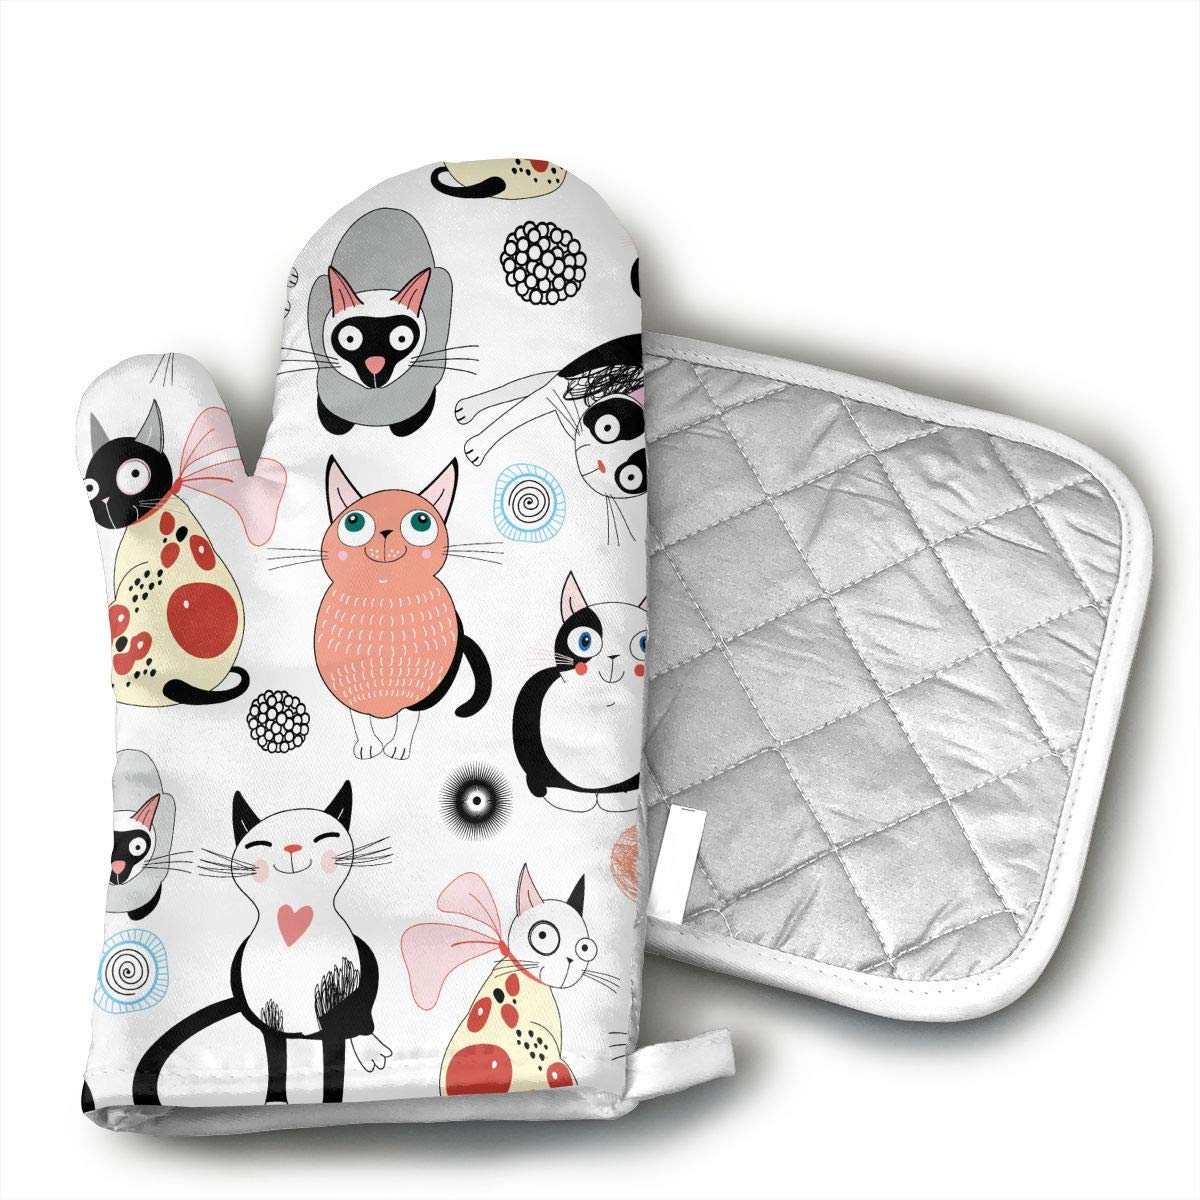 QEDGC Lead Free - Safe Children Fidget Toy Hand Spinner Curly Tail Cats Pattern Oven Mitts - air Non-Slip Kitchen Oven Gloves Cooking,Baking,Grilling,Barbecue Potholders,